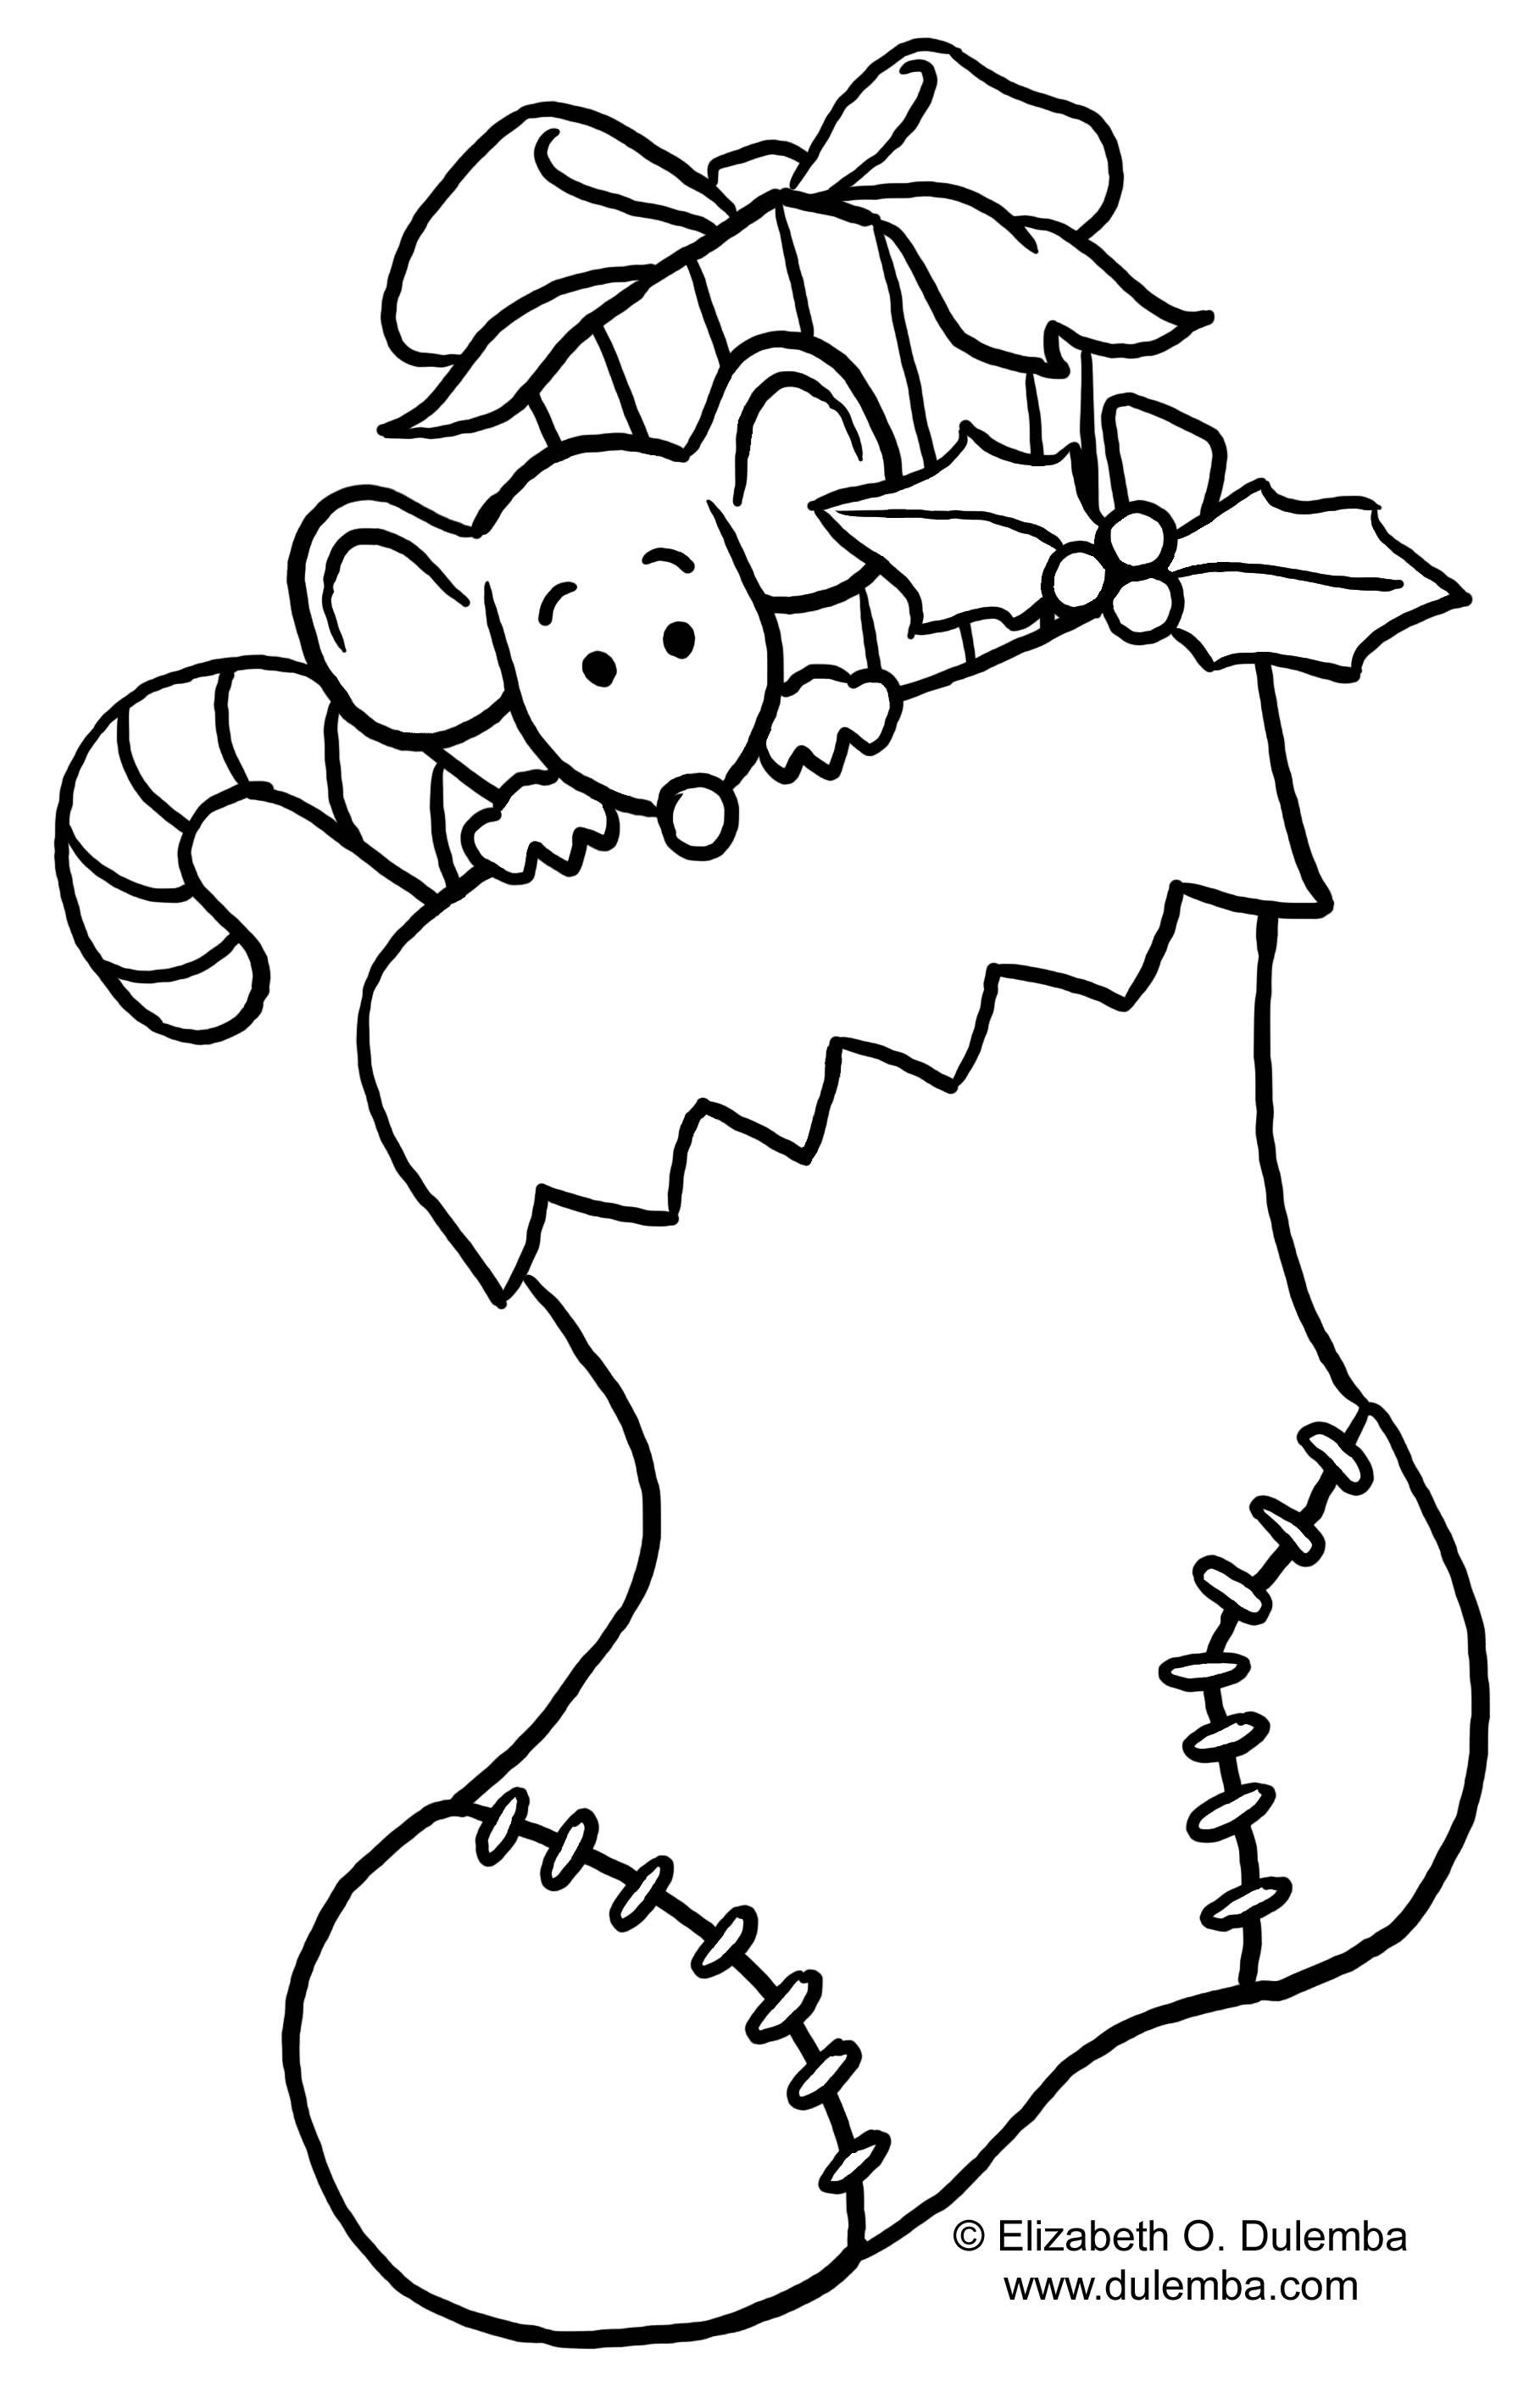 Free Disney Holiday Coloring Pages, Download Free Clip Art, Free ... | 2829x1817